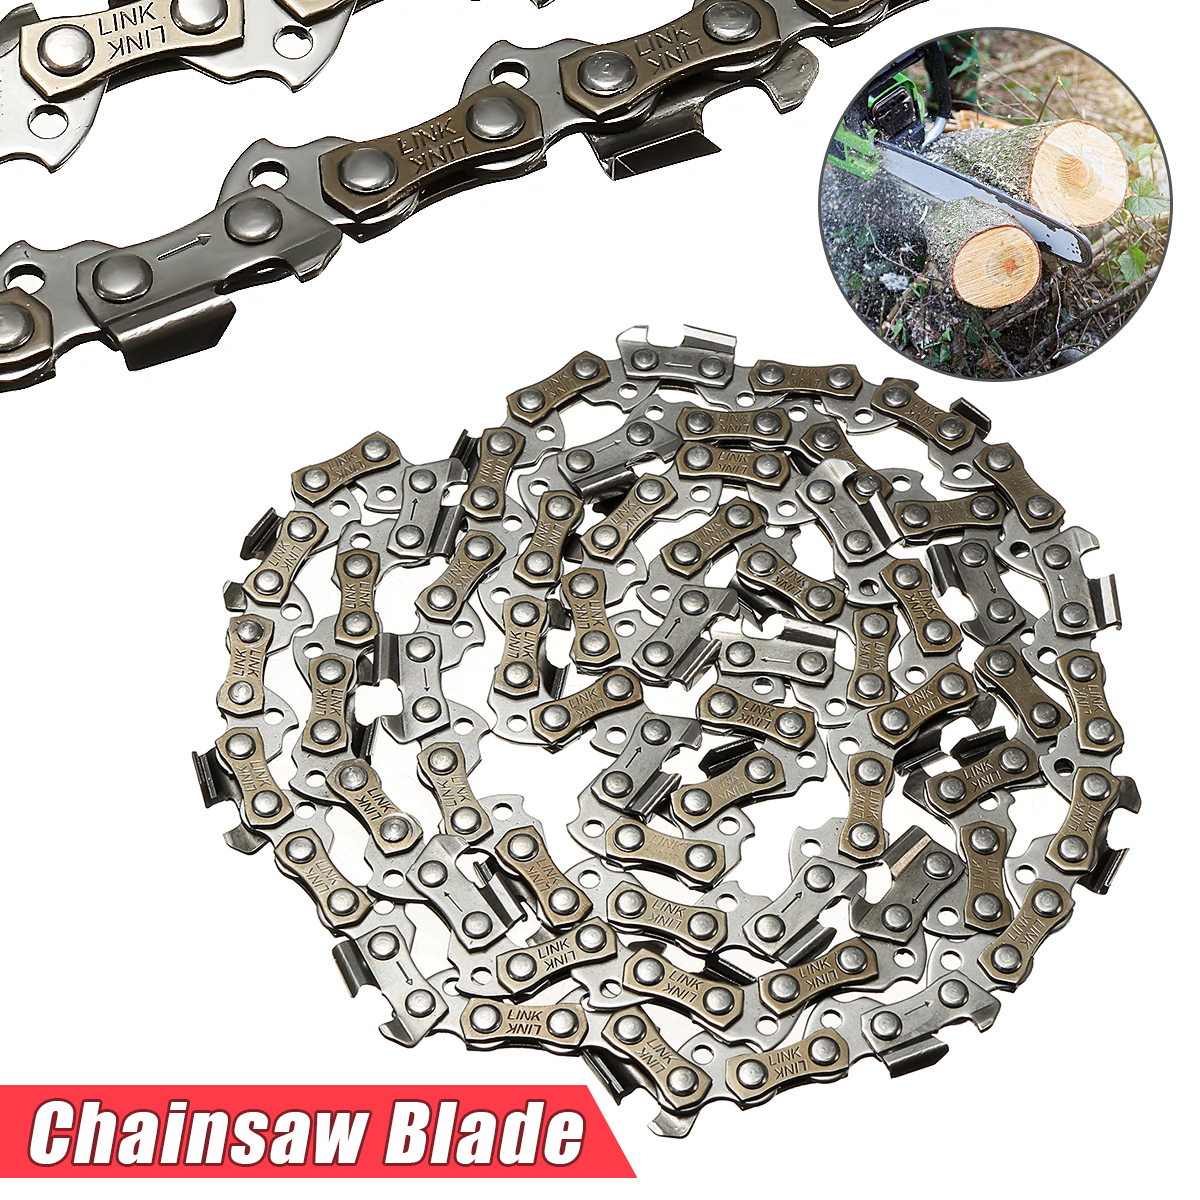 MTGATHER Meatal Chainsaw Chain 18 Blade 62 Section 3/8 LP  Saw Chain Accessory For Generic Best PriceMTGATHER Meatal Chainsaw Chain 18 Blade 62 Section 3/8 LP  Saw Chain Accessory For Generic Best Price